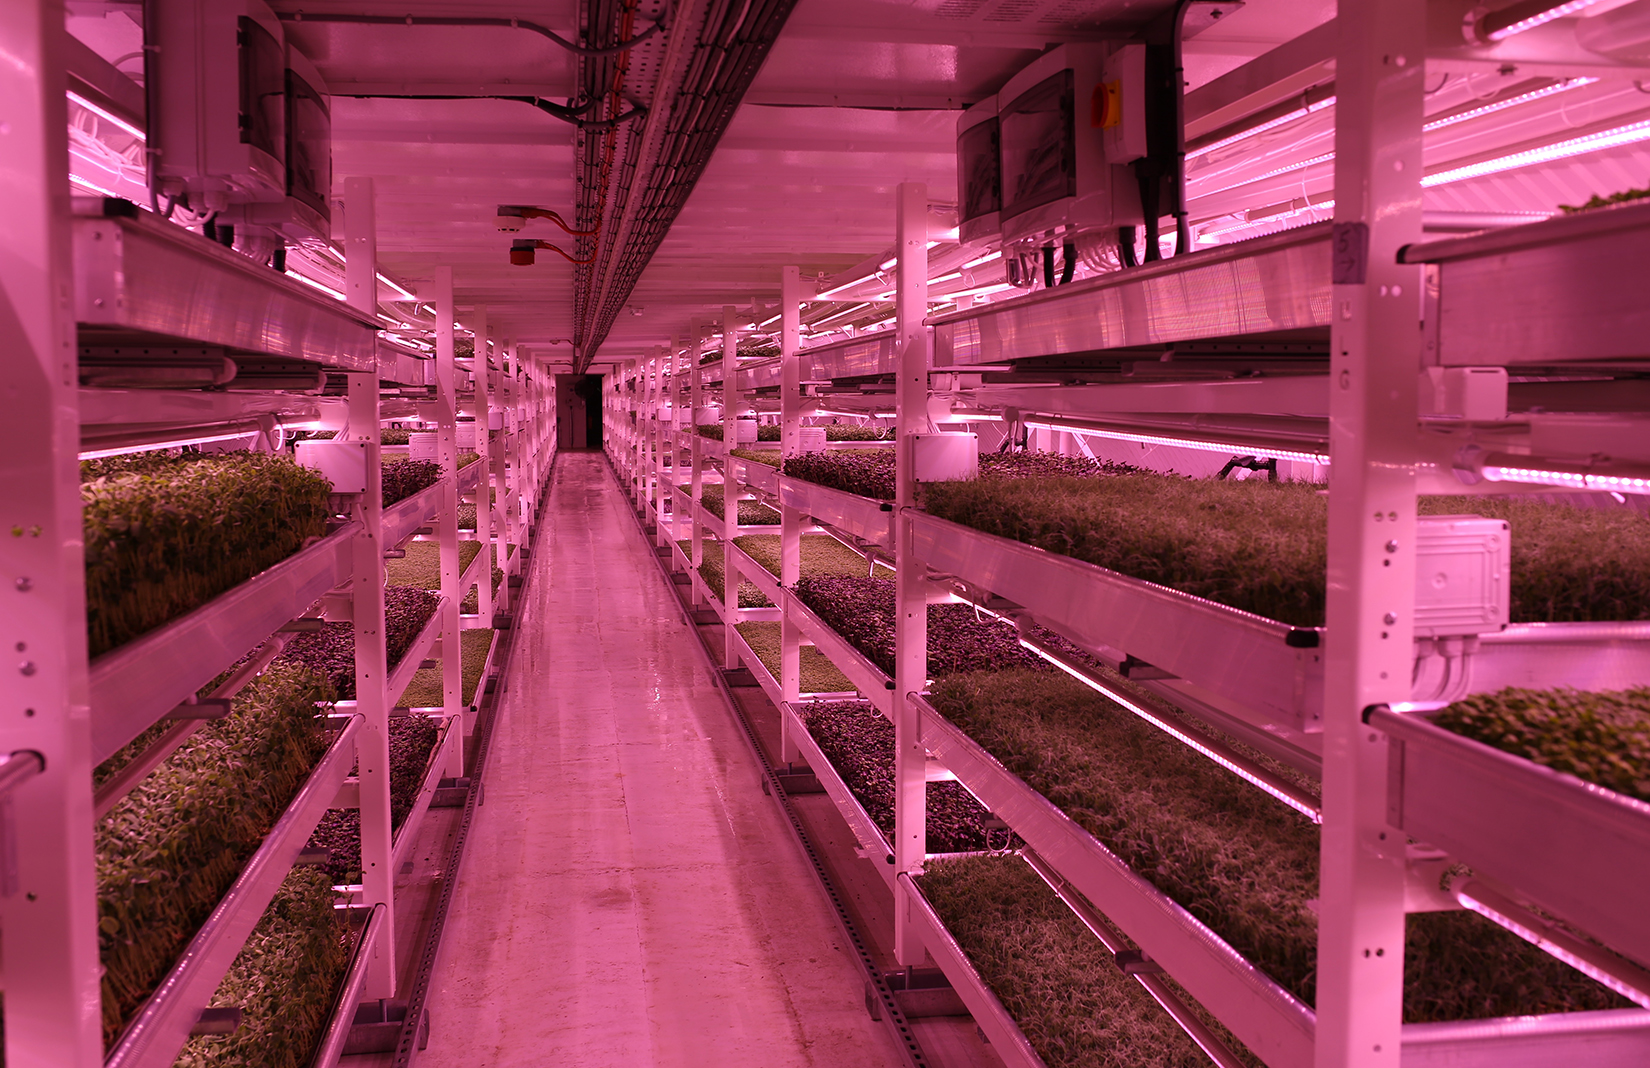 London's first ever underground farm